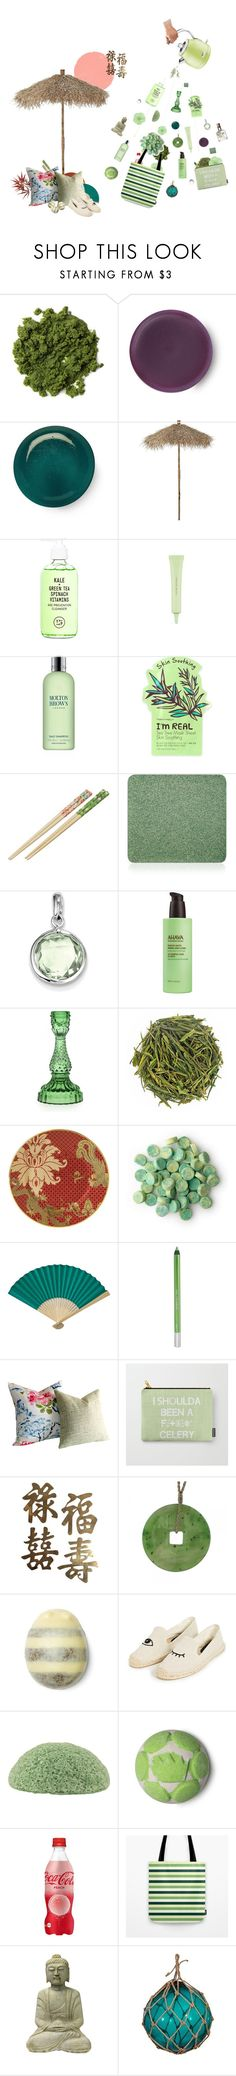 """Under the Green Tea Shower"" by iapo ❤ liked on Polyvore featuring Lene Bjerre, Youth To The People, nature republic, Molton Brown, TONYMOLY, Inglot, BillyTheTree, Ahava, Wedgwood and Cultural Intrigue"